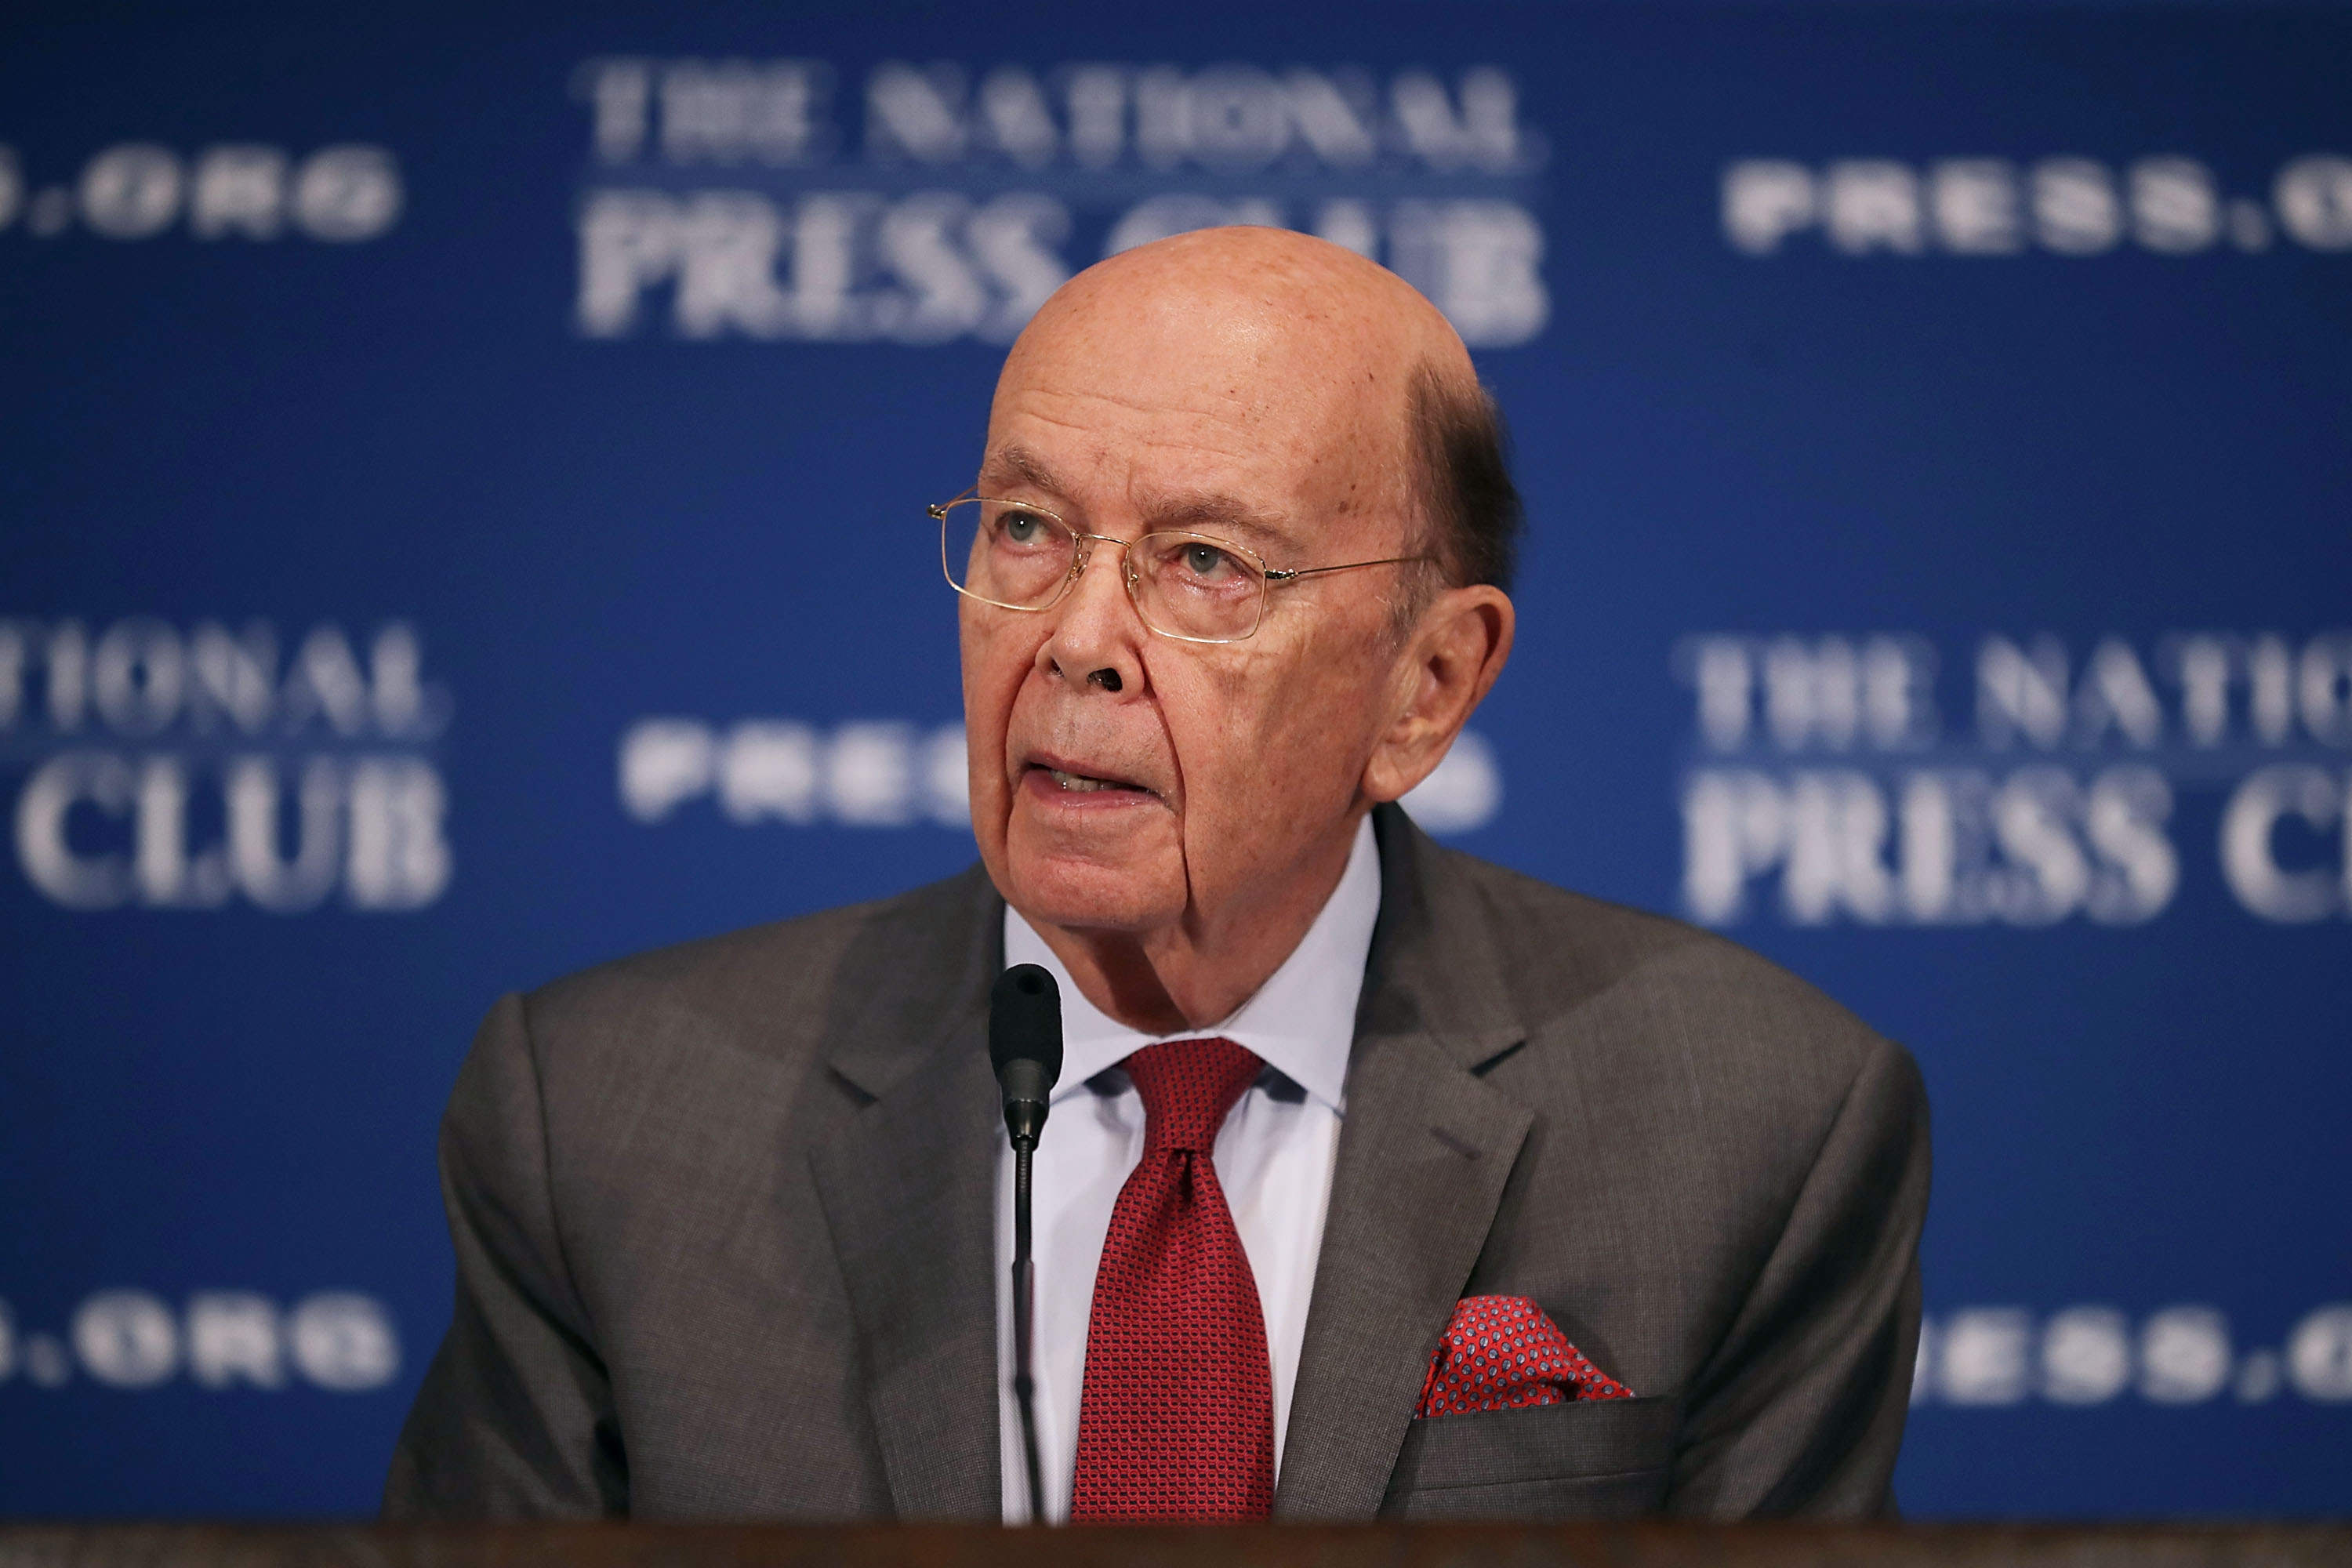 Commerce Secretary Wilbur Ross delivers keynote remarks during the Newsmakers Luncheon at the National Press Club on May 14, 2018. (Chip Somodevilla/Getty Images)